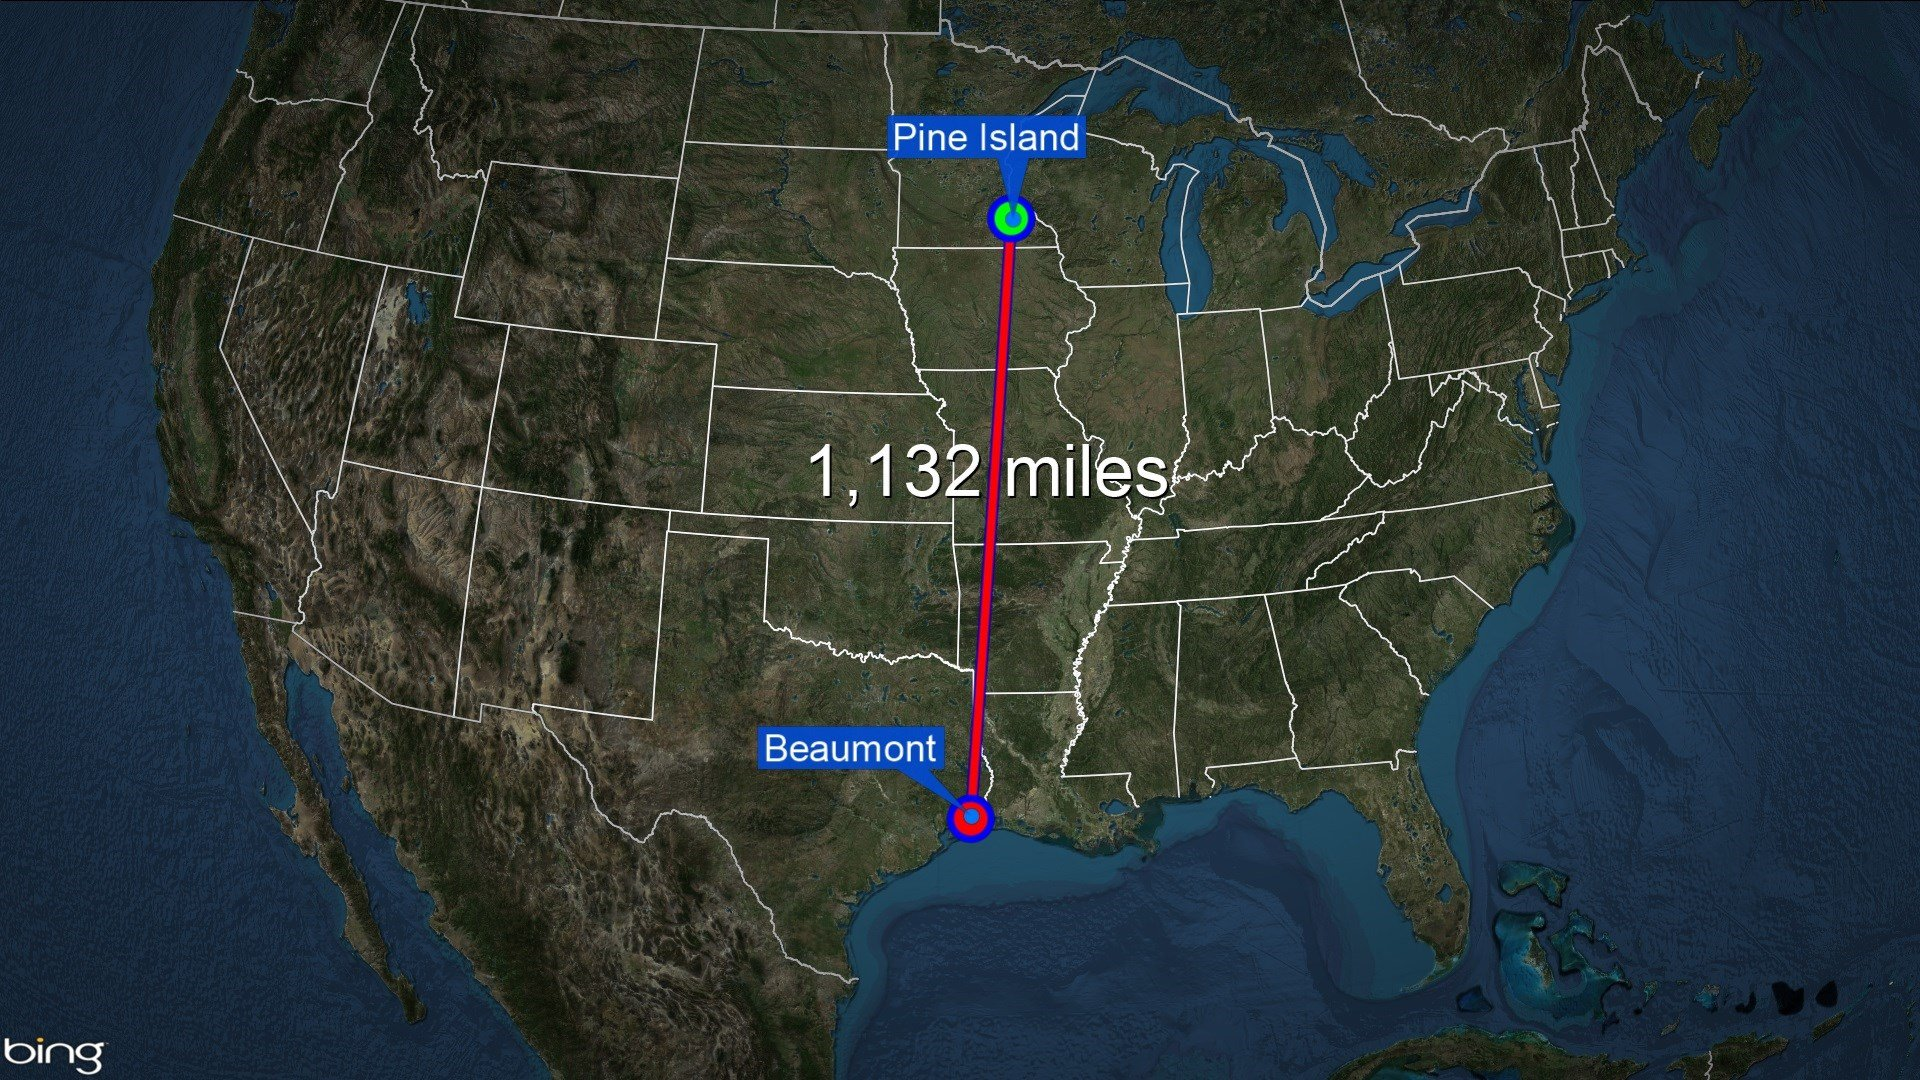 Kautz will travel 1,132 miles from Pine Island to Beaumont.